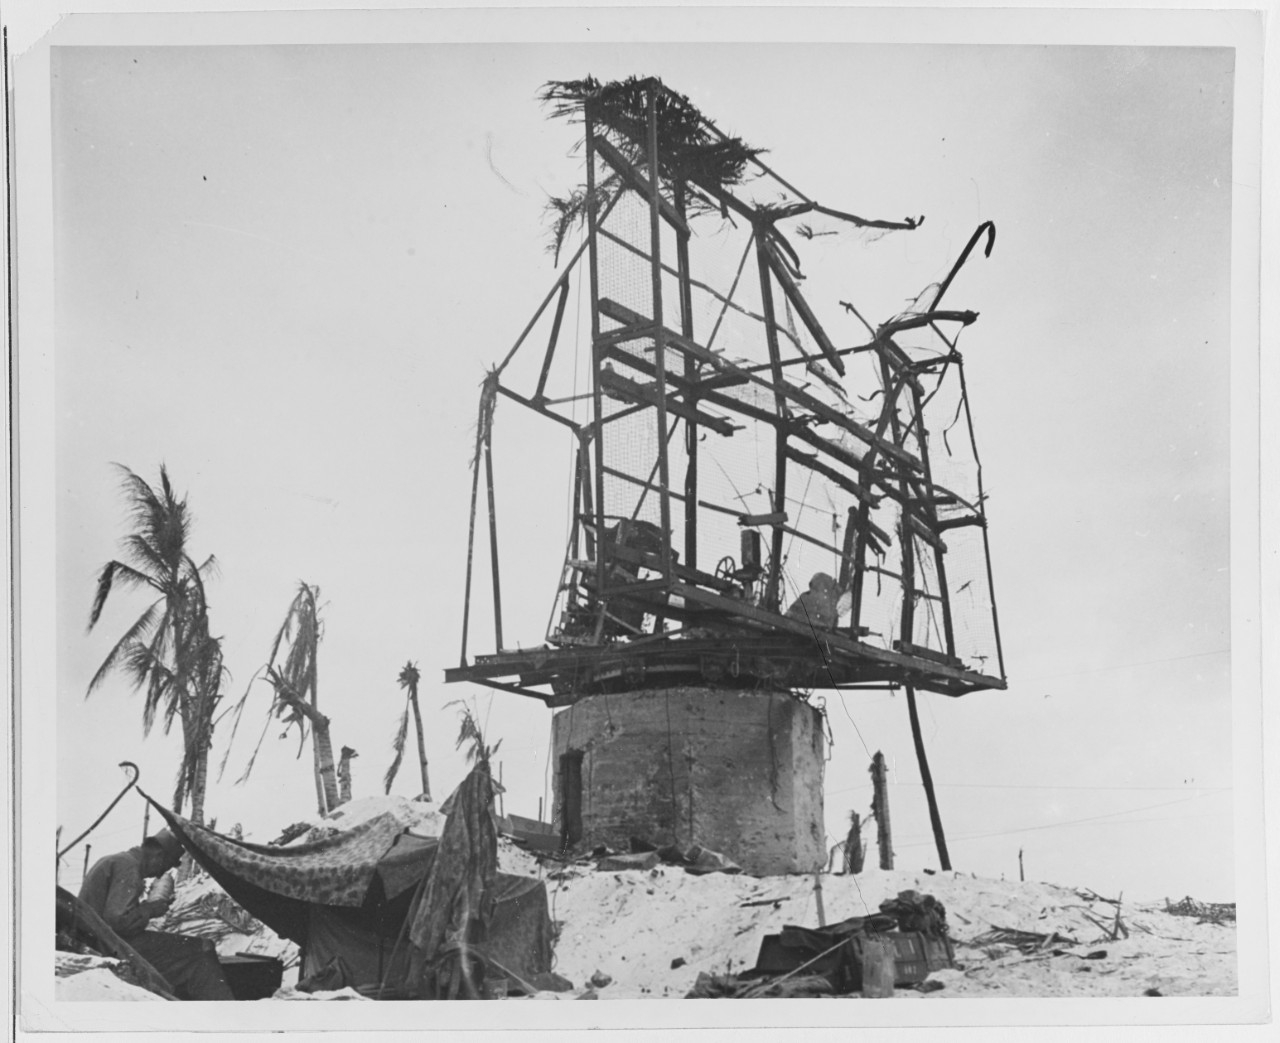 Japanese radar installation on Betio Island, Tarawa Atoll